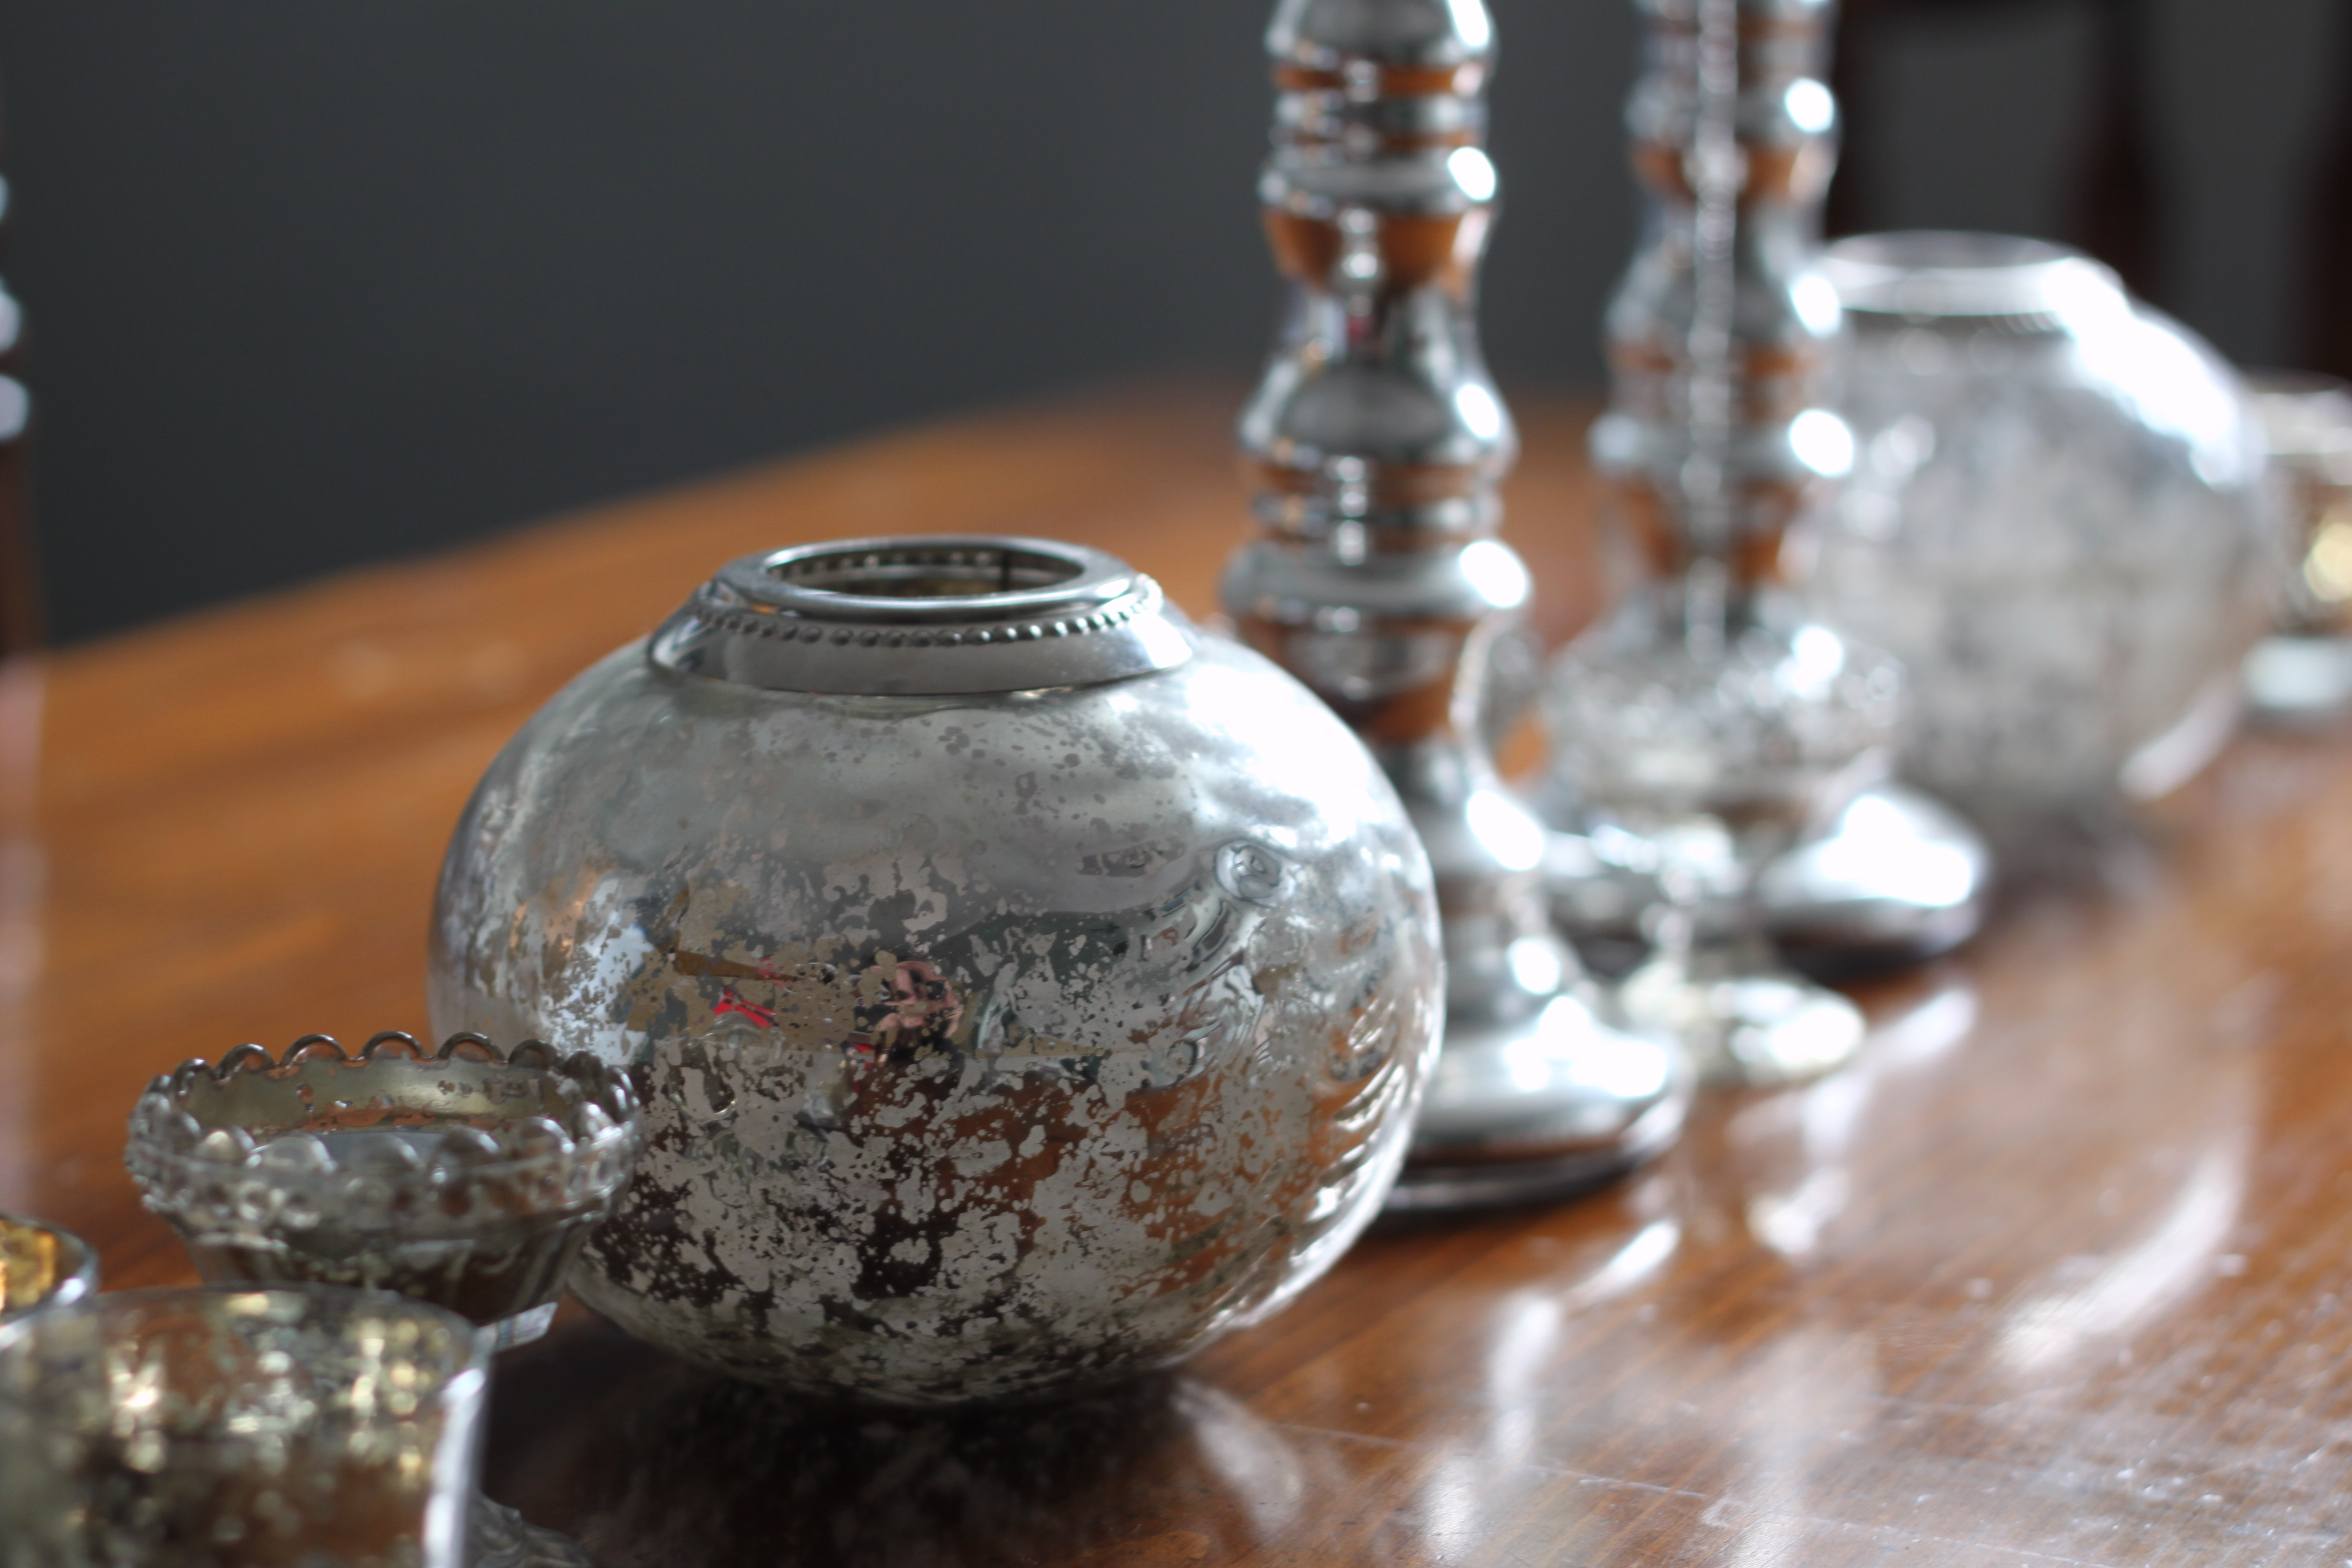 The Understated Beauty of Mercury Glass